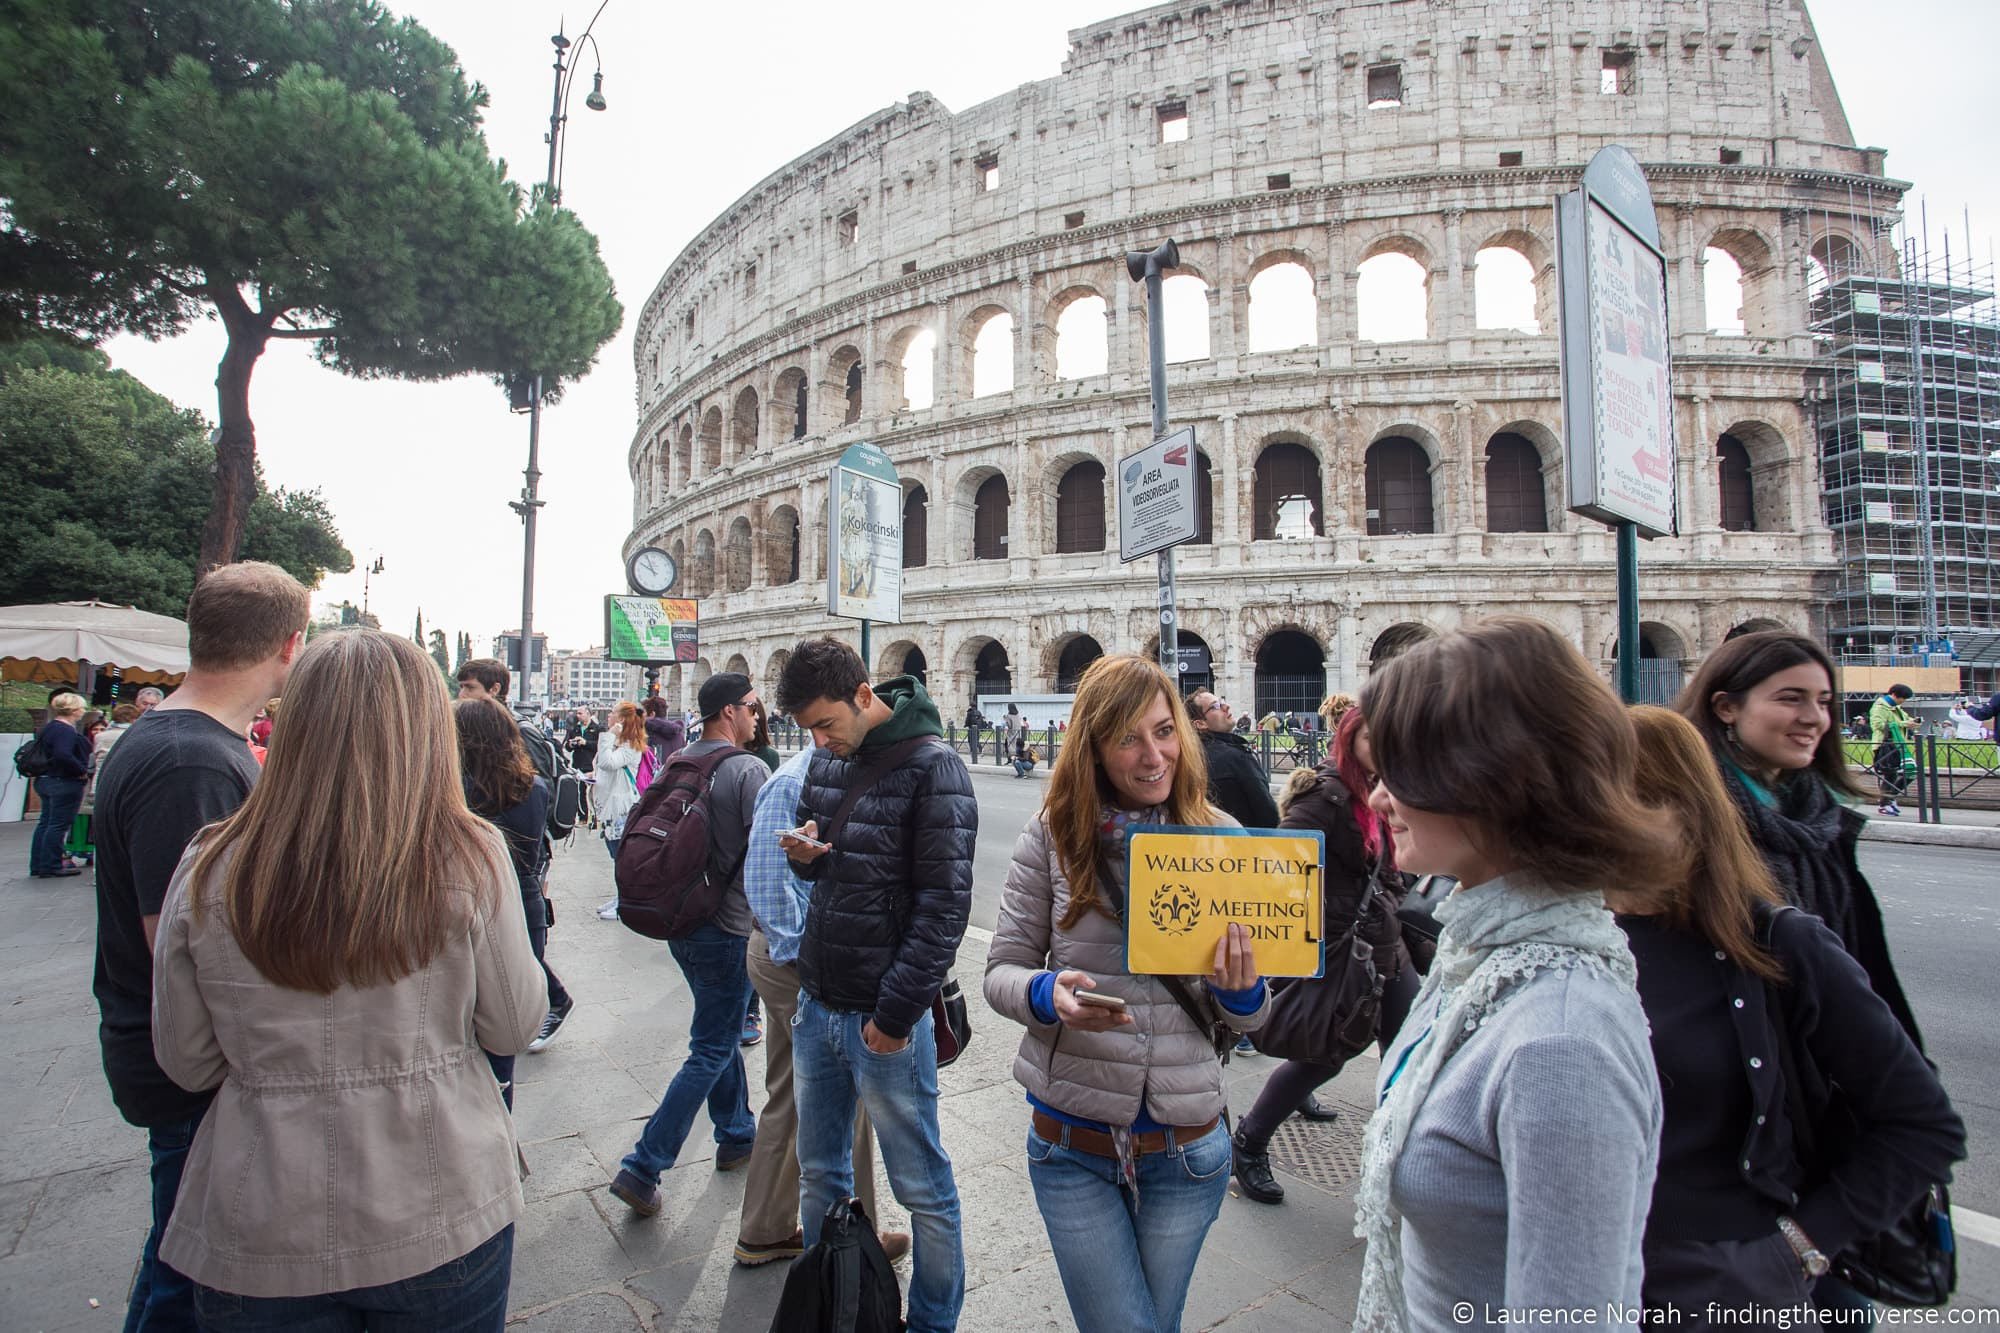 Take Walks guided Tour Colosseum